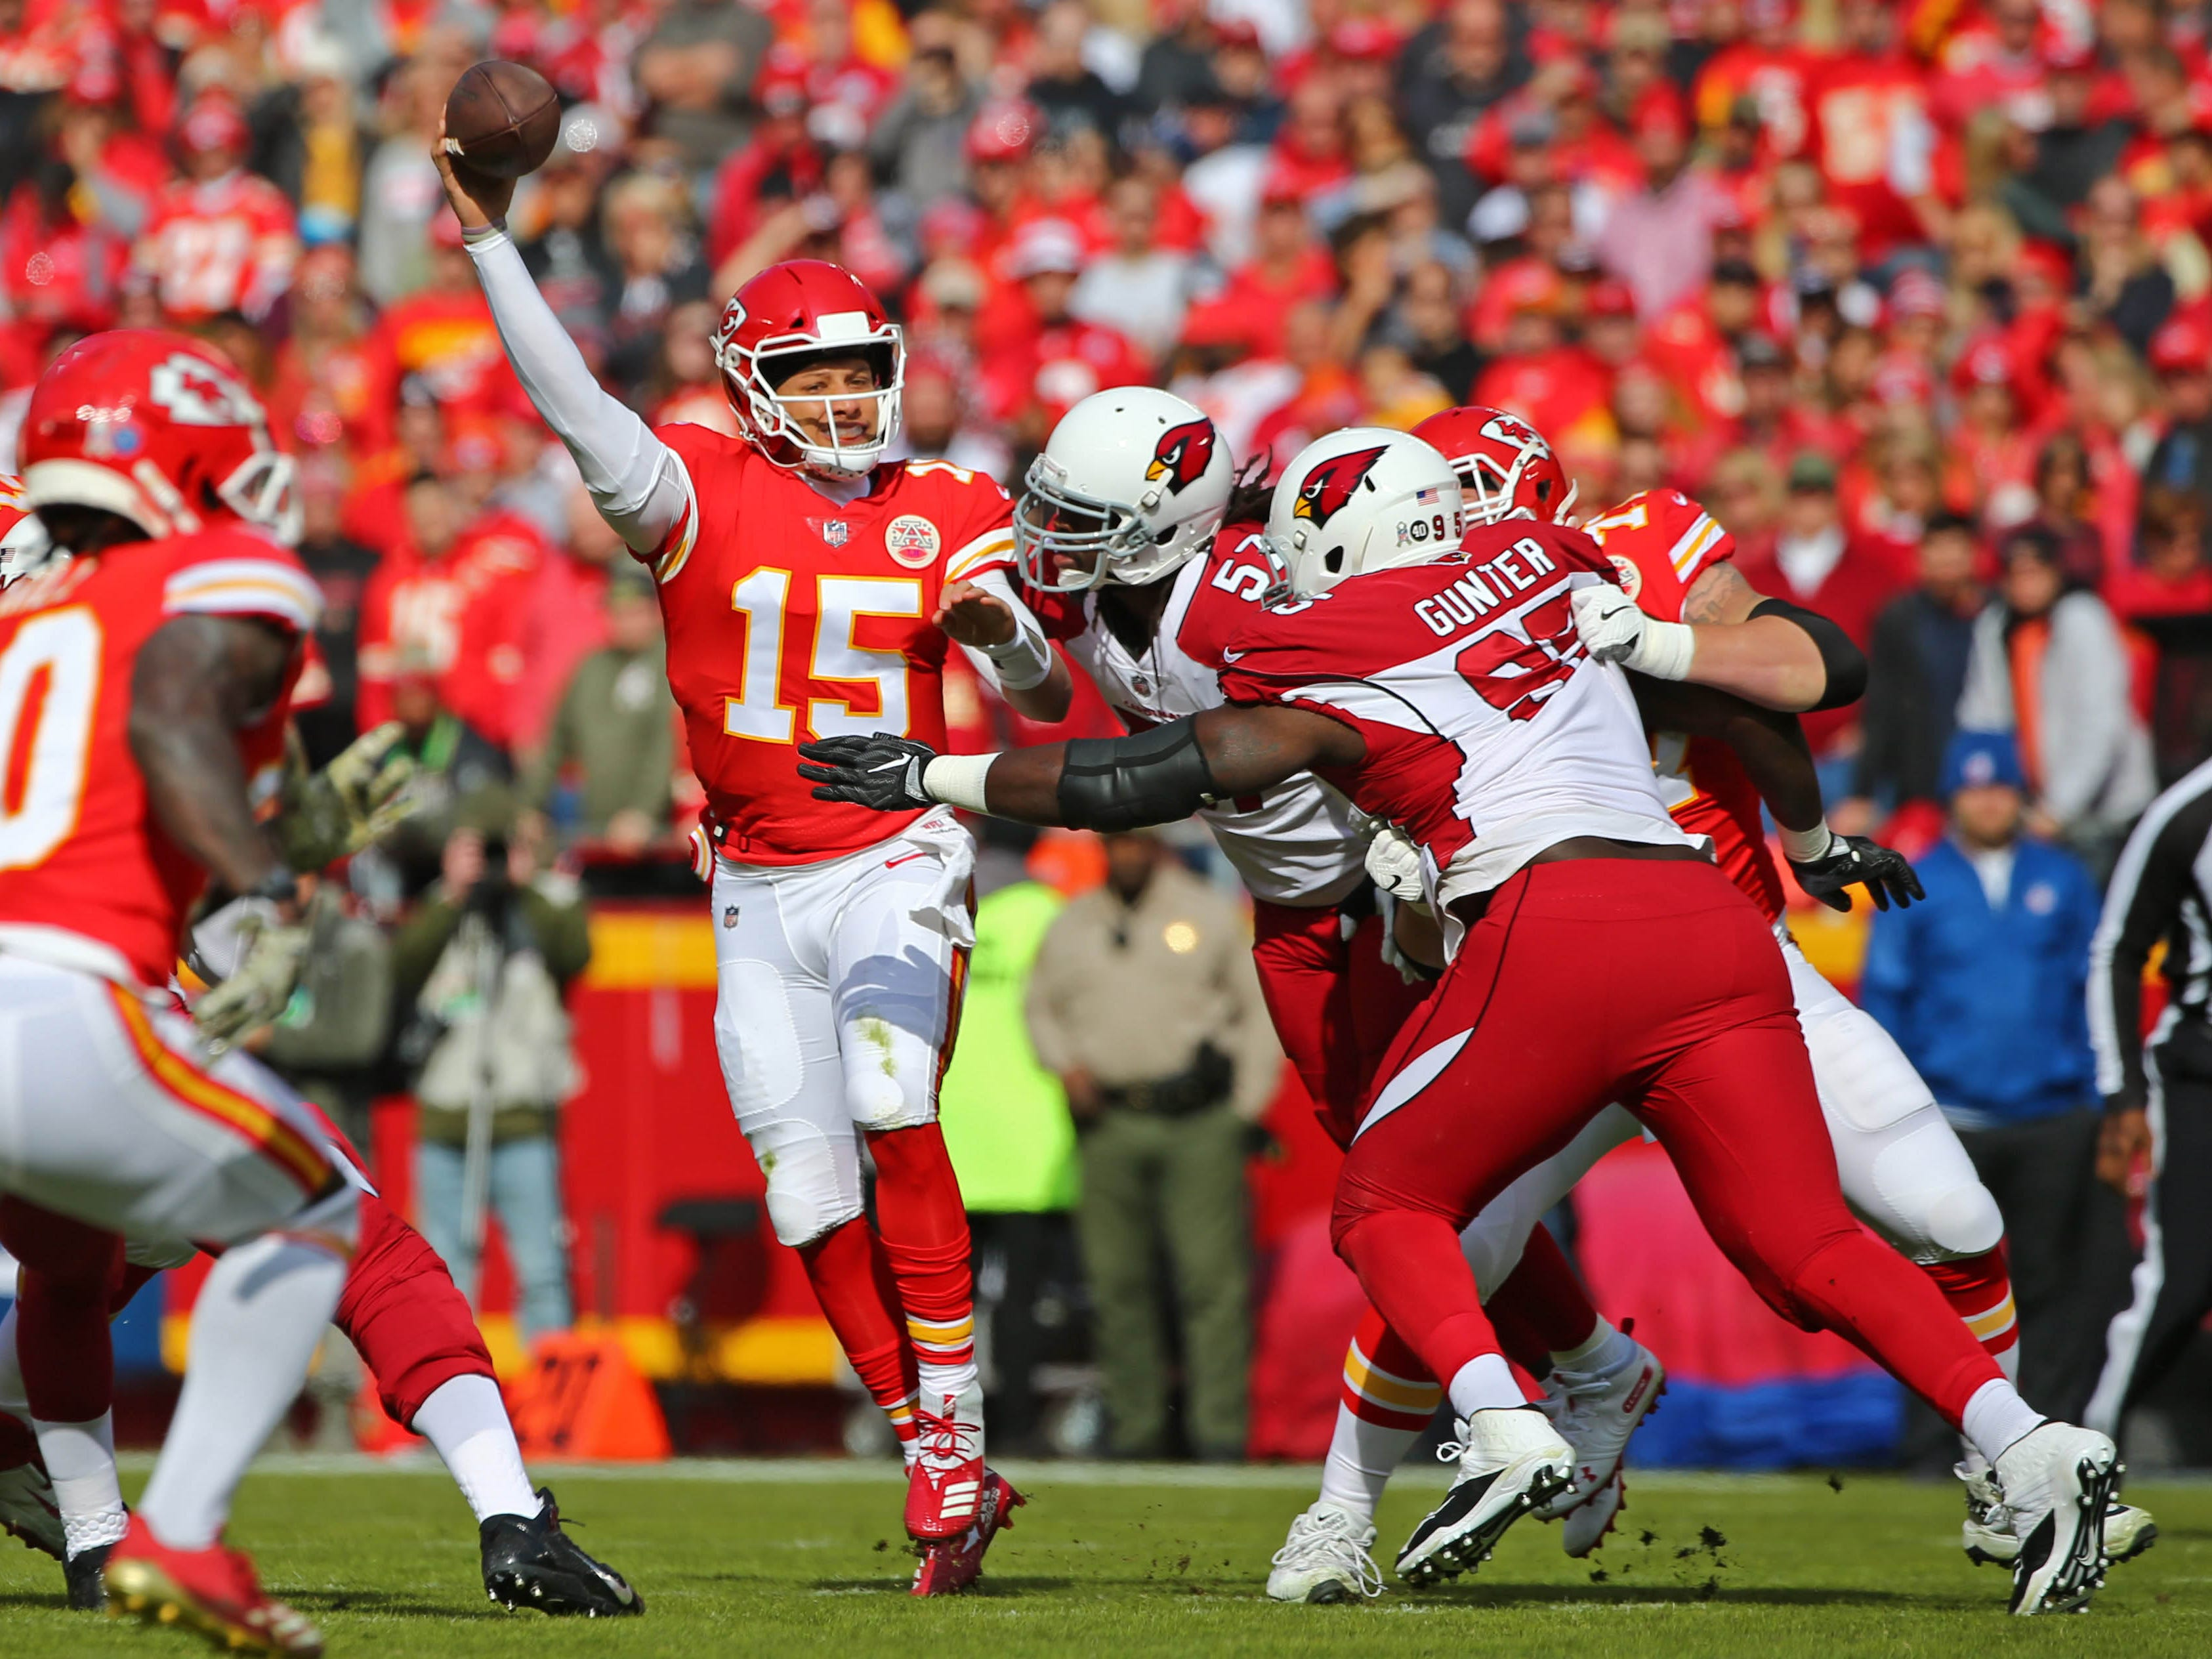 Nov 11, 2018; Kansas City, MO, USA; Kansas City Chiefs quarterback Patrick Mahomes (15) throws a pass as Arizona Cardinals linebacker Josh Bynes (57) and defensive tackle Rodney Gunter (95) defend in the first half at Arrowhead Stadium. Mandatory Credit: Jay Biggerstaff-USA TODAY Sports